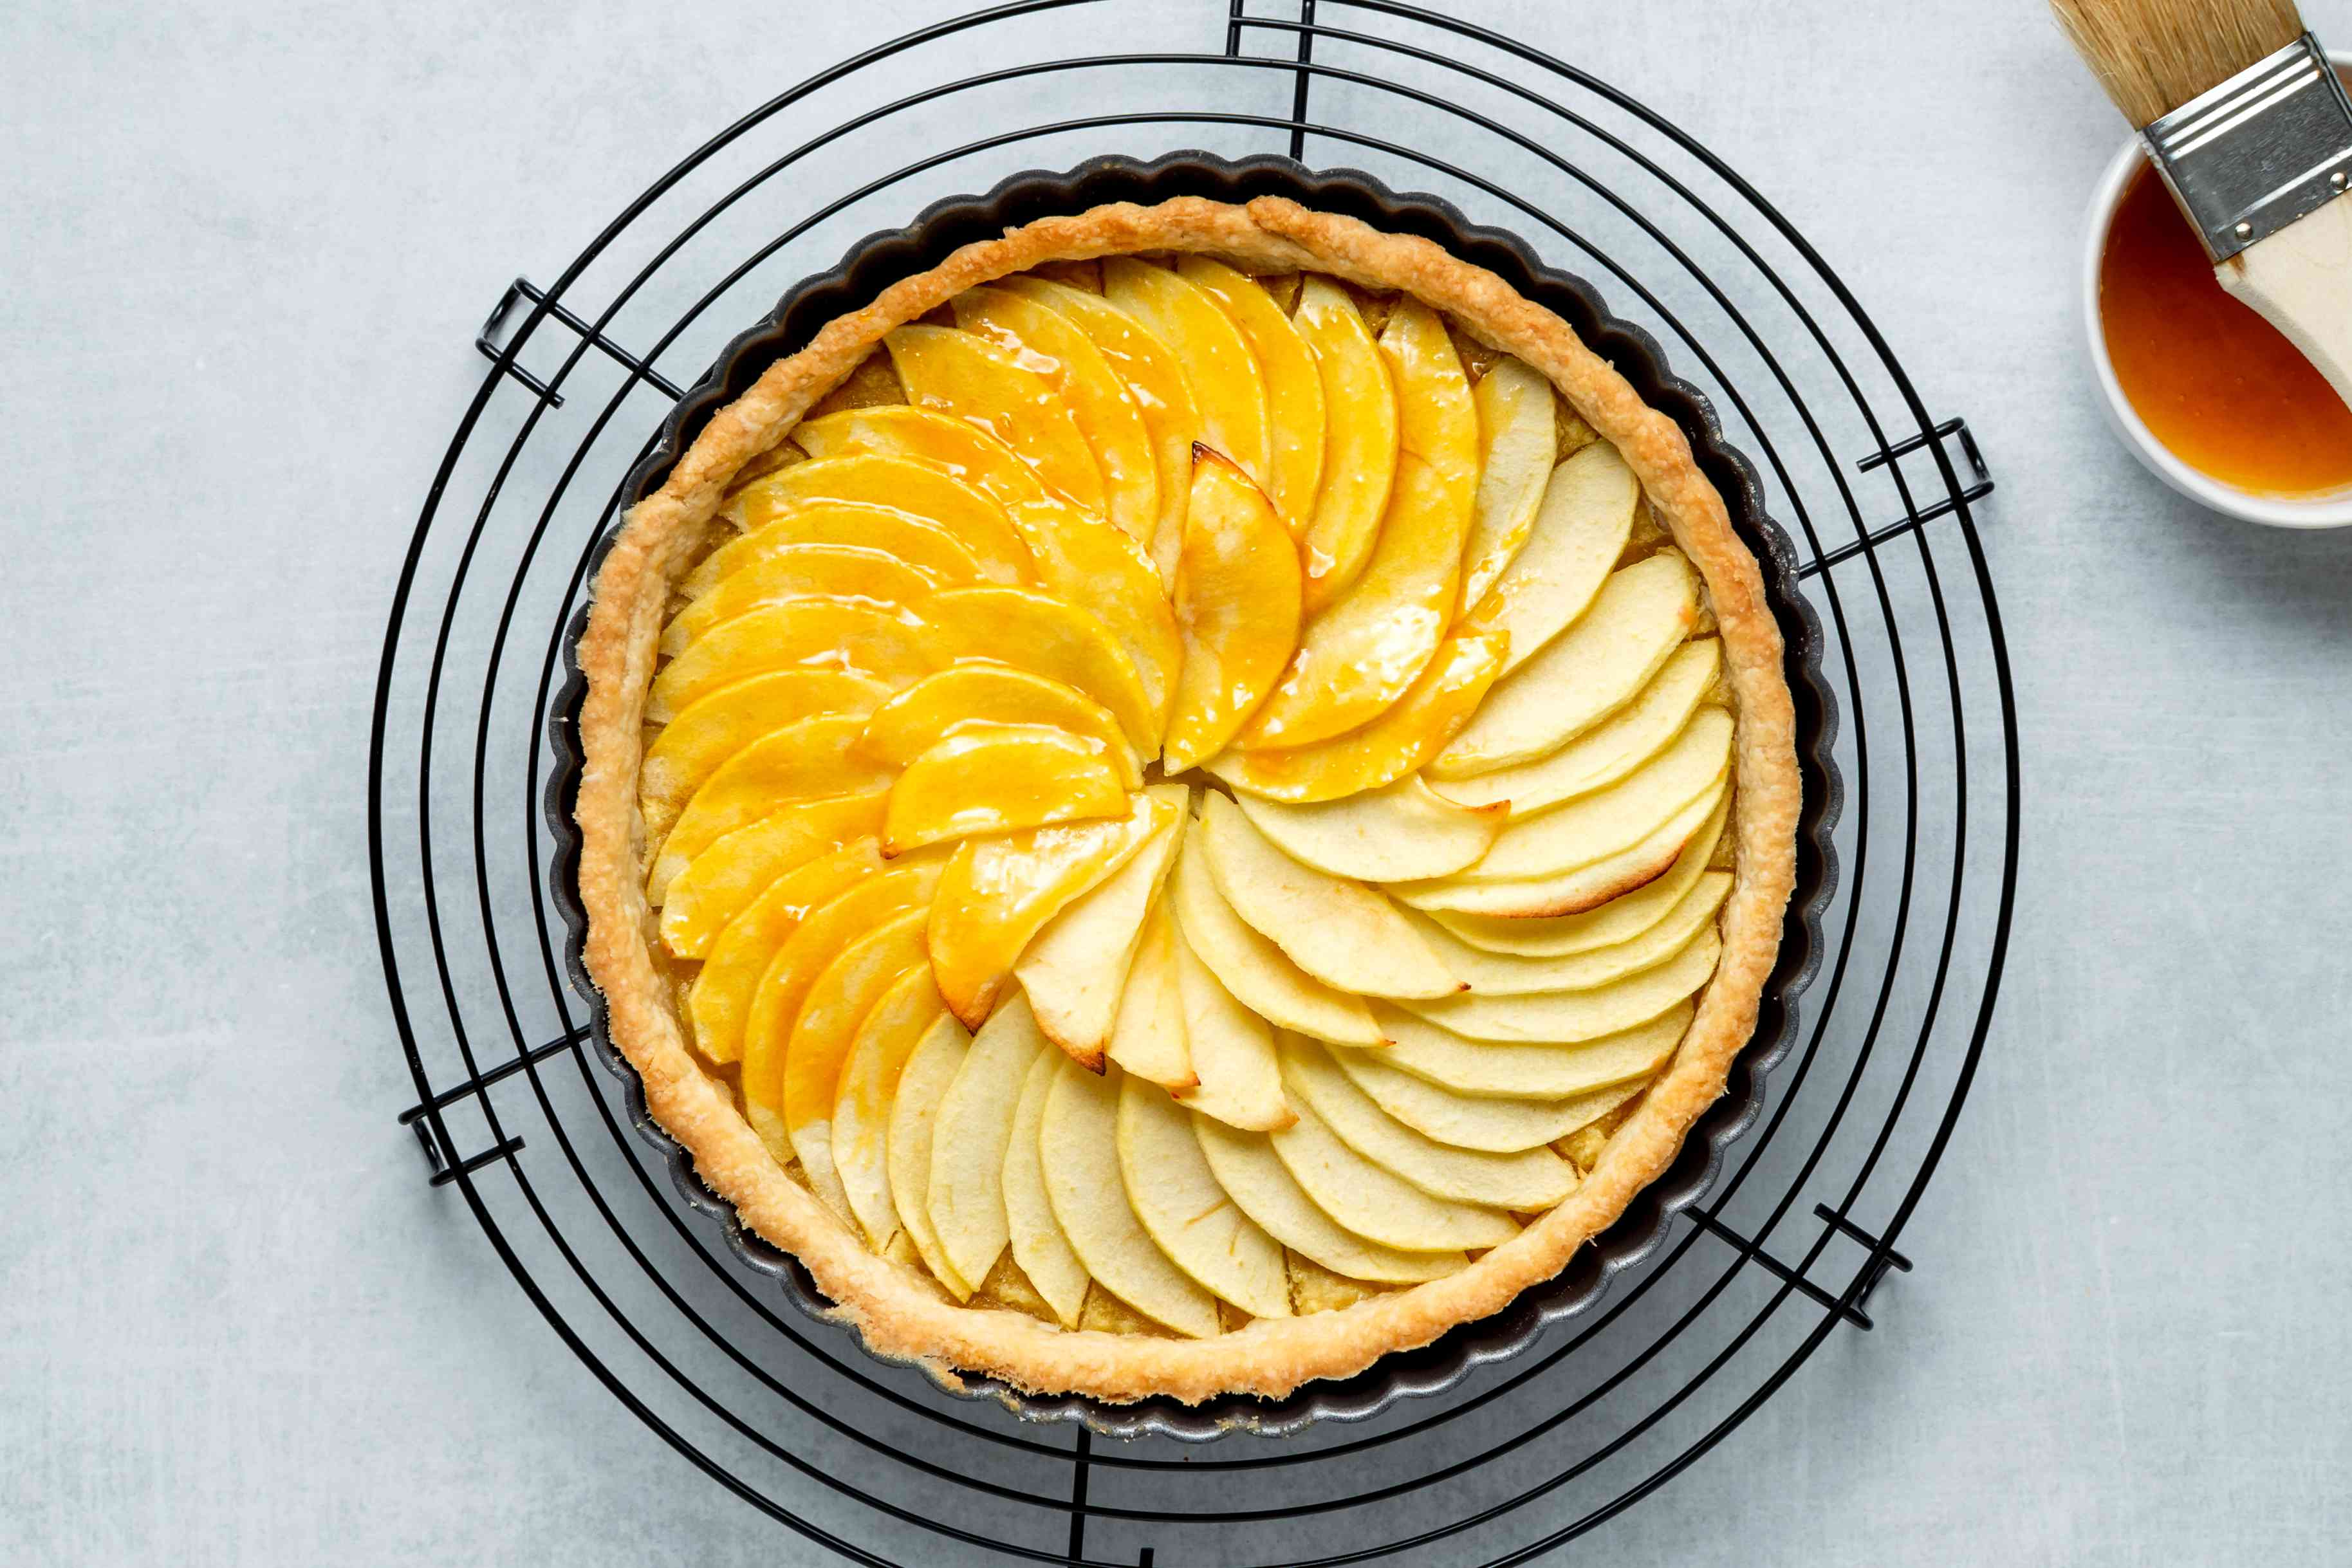 Classic French Tarte Aux Pommes, brushed with the melted apricot jelly